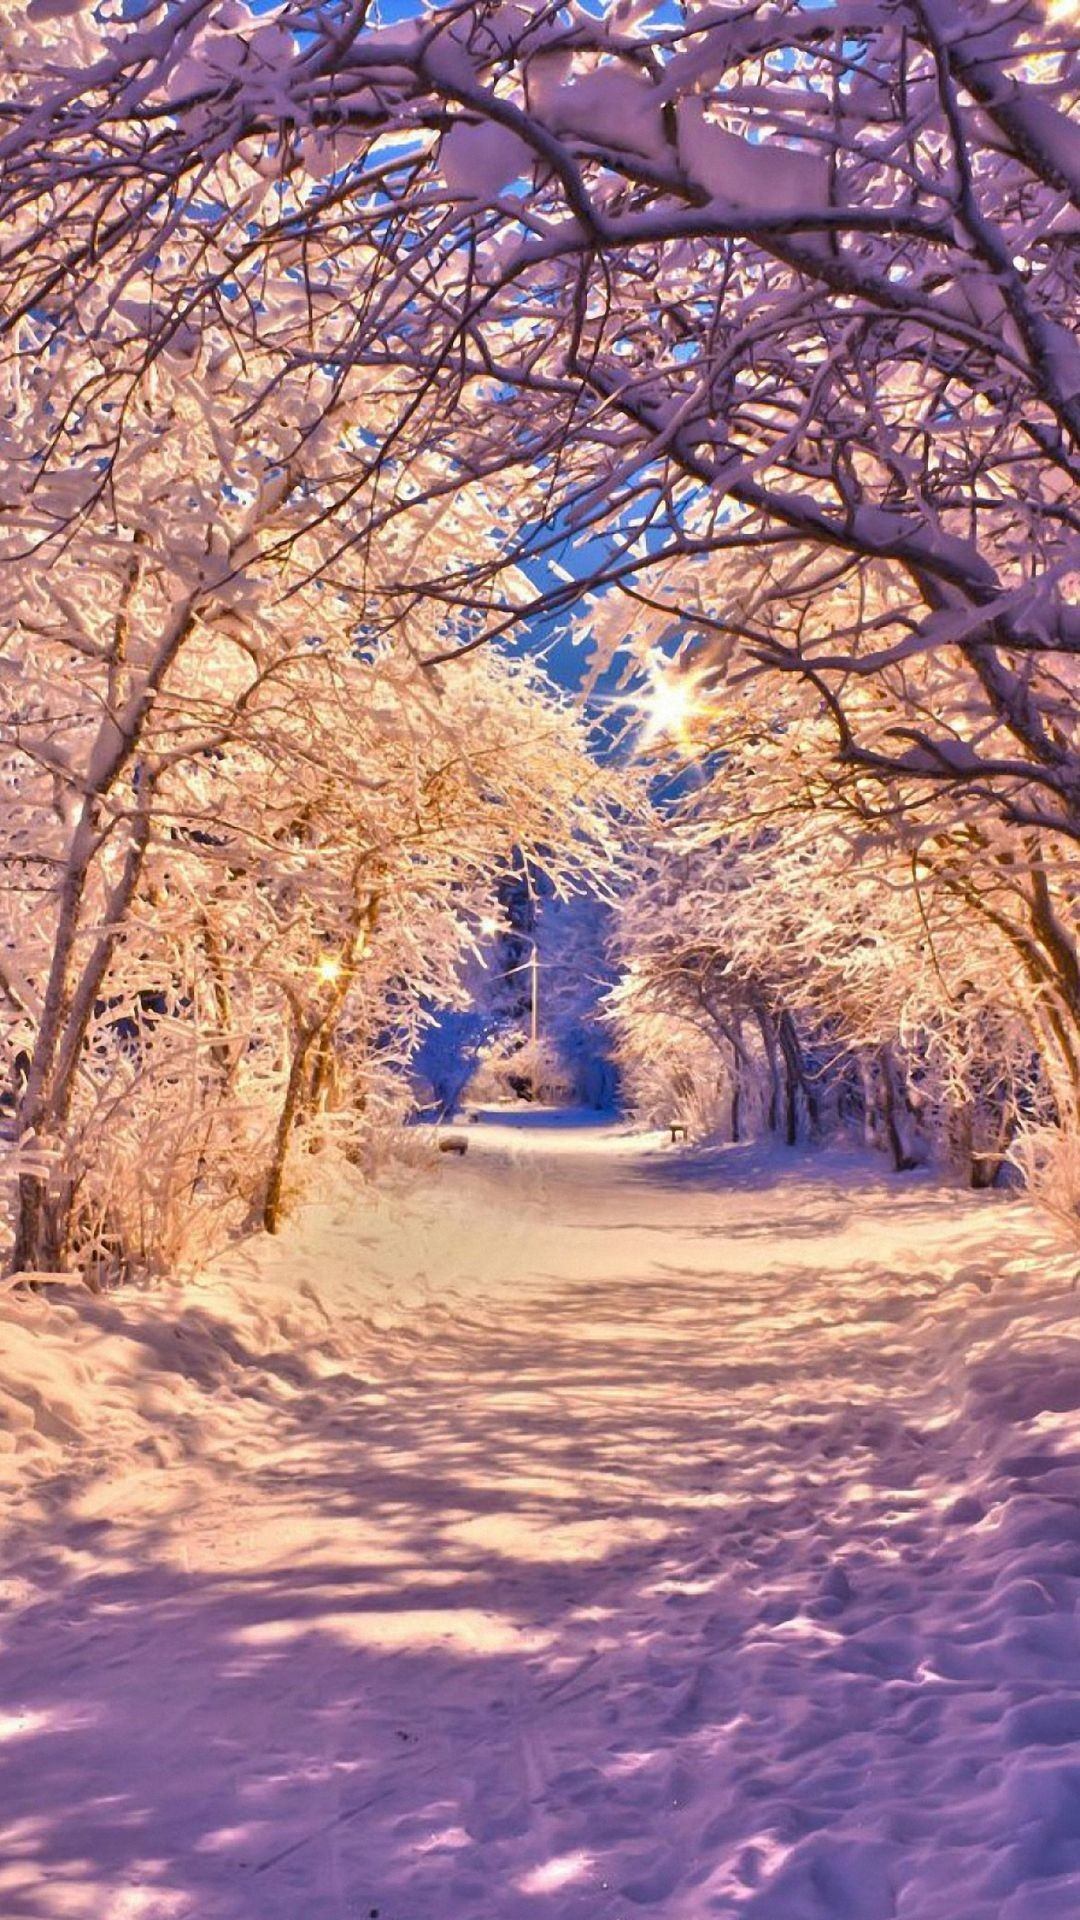 Winter Wallpaper For Iphone 6s 81 Images